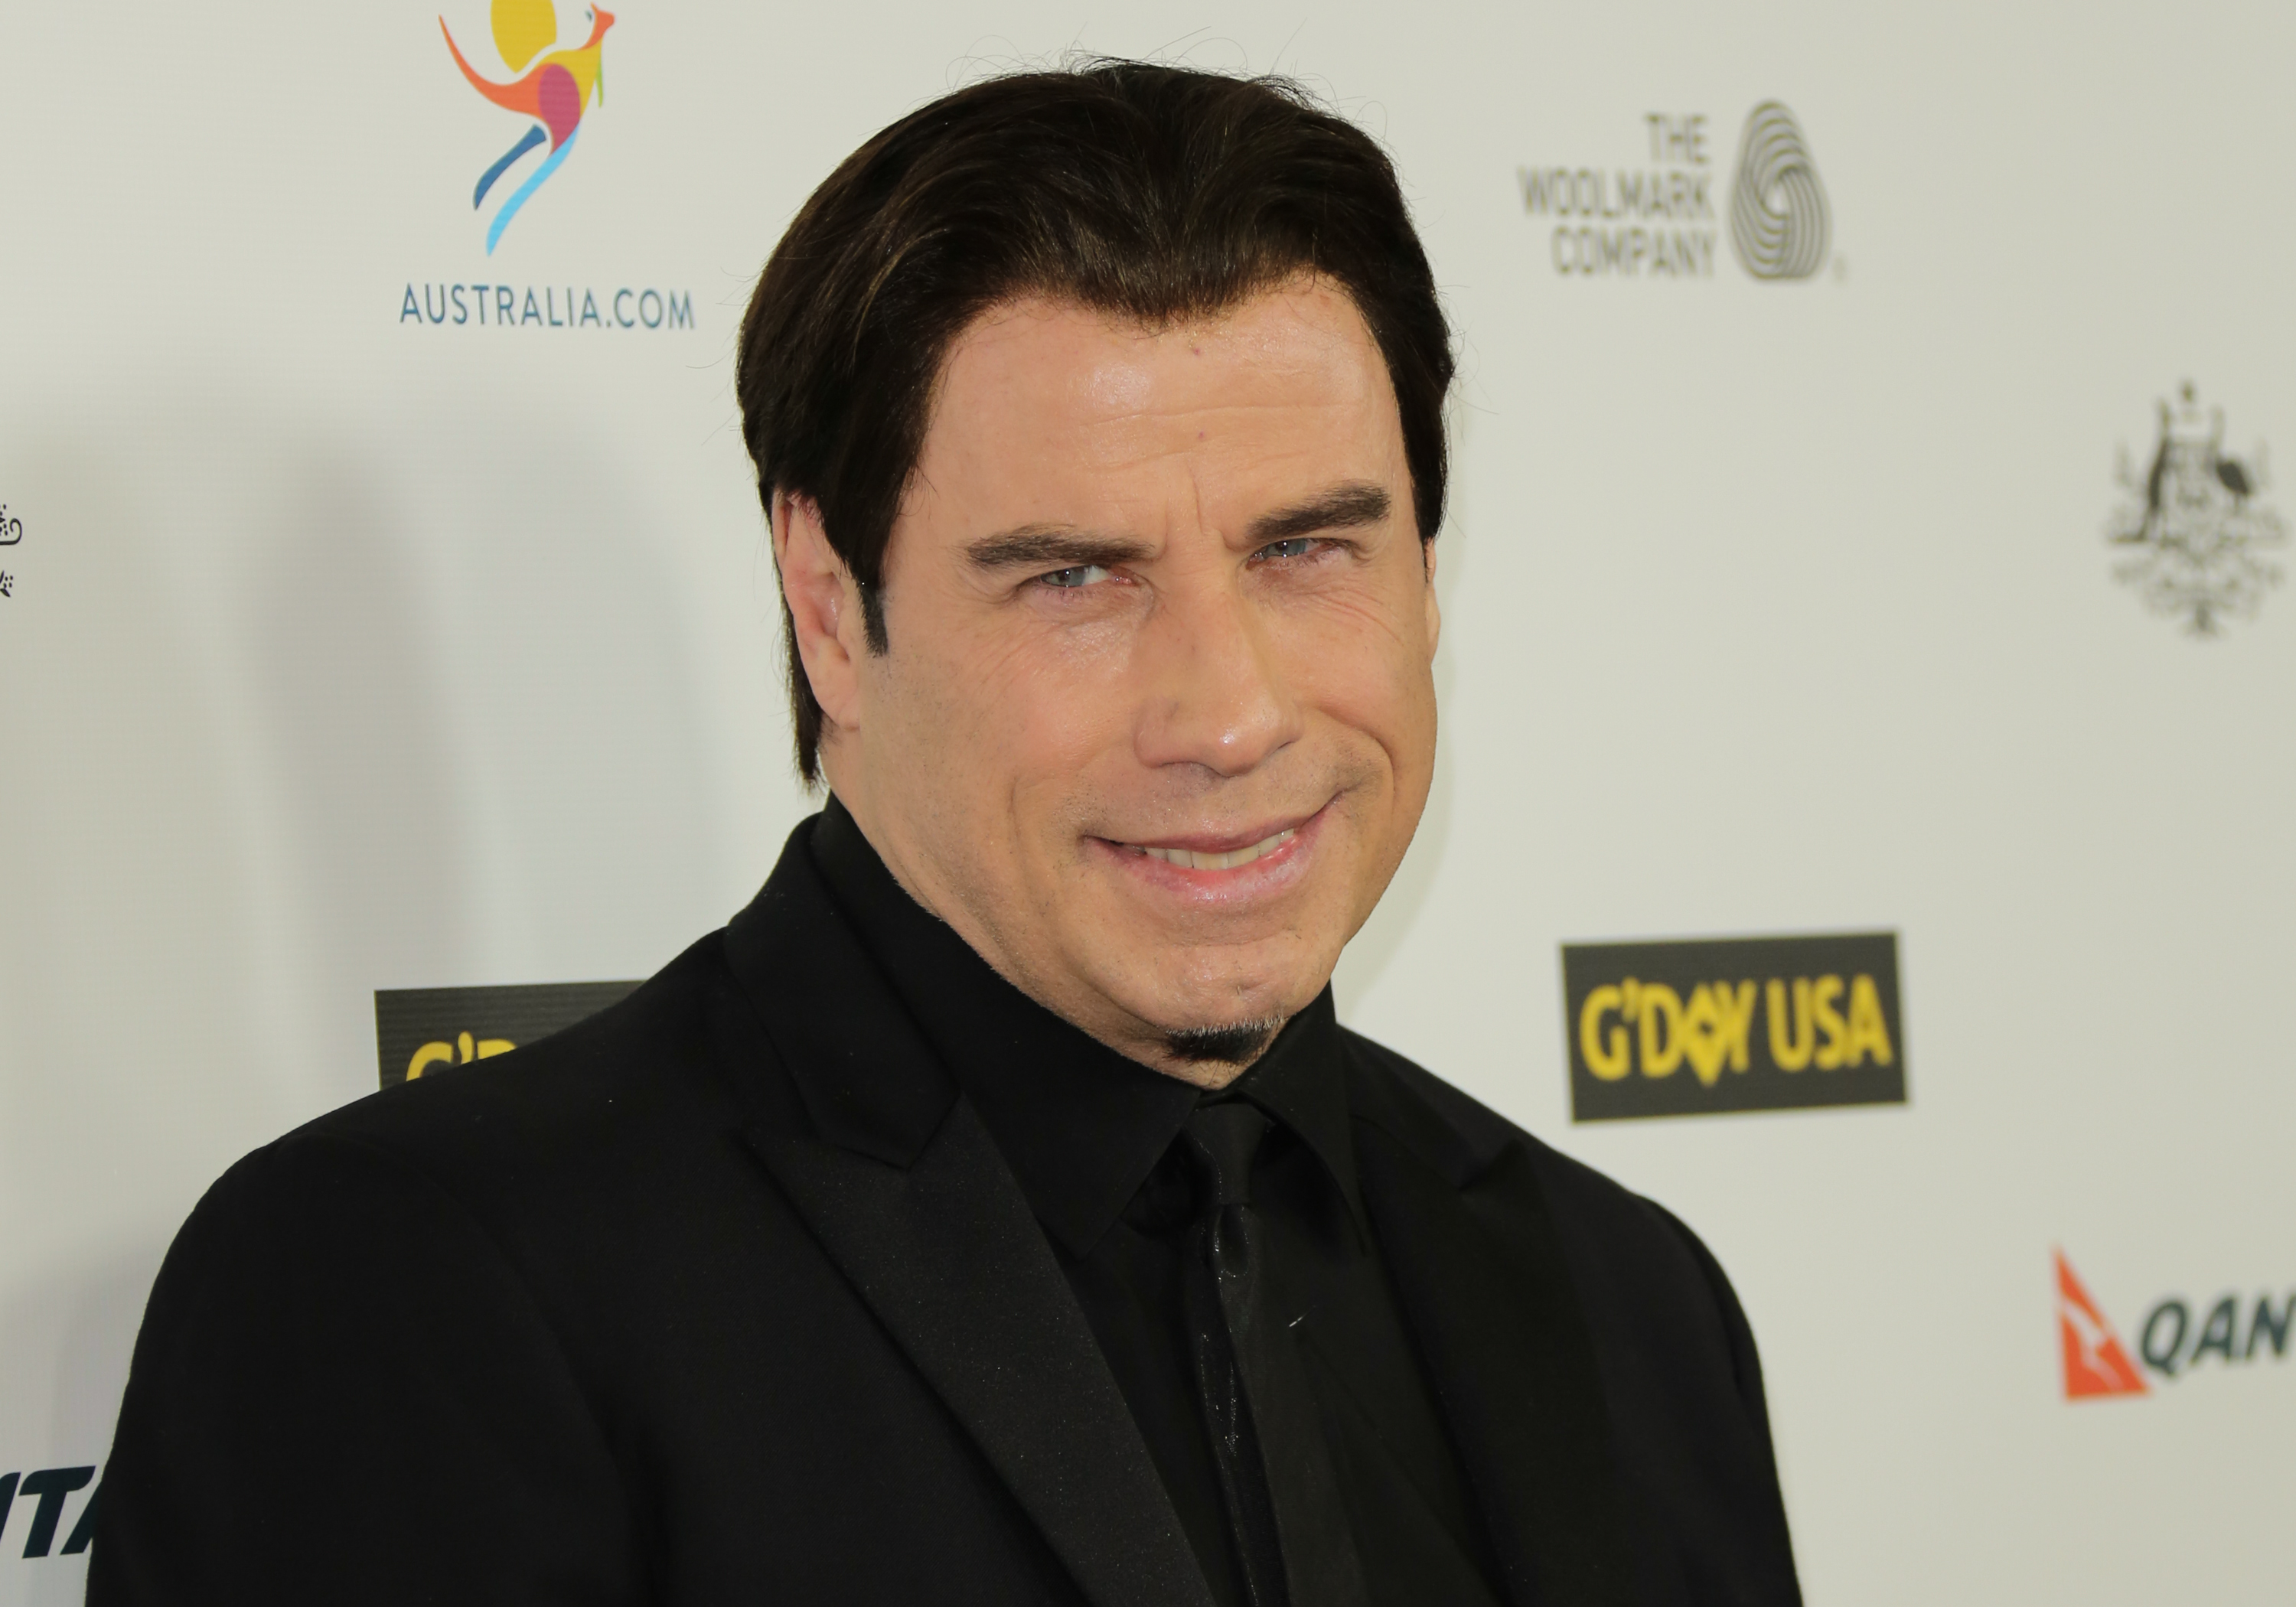 Actor John Travolta at the 2014 G'Day USA Los Angeles black tie gala at the JW Marriott Los Angeles at L.A. LIVE on January 11, 2014 in Los Angeles, California.